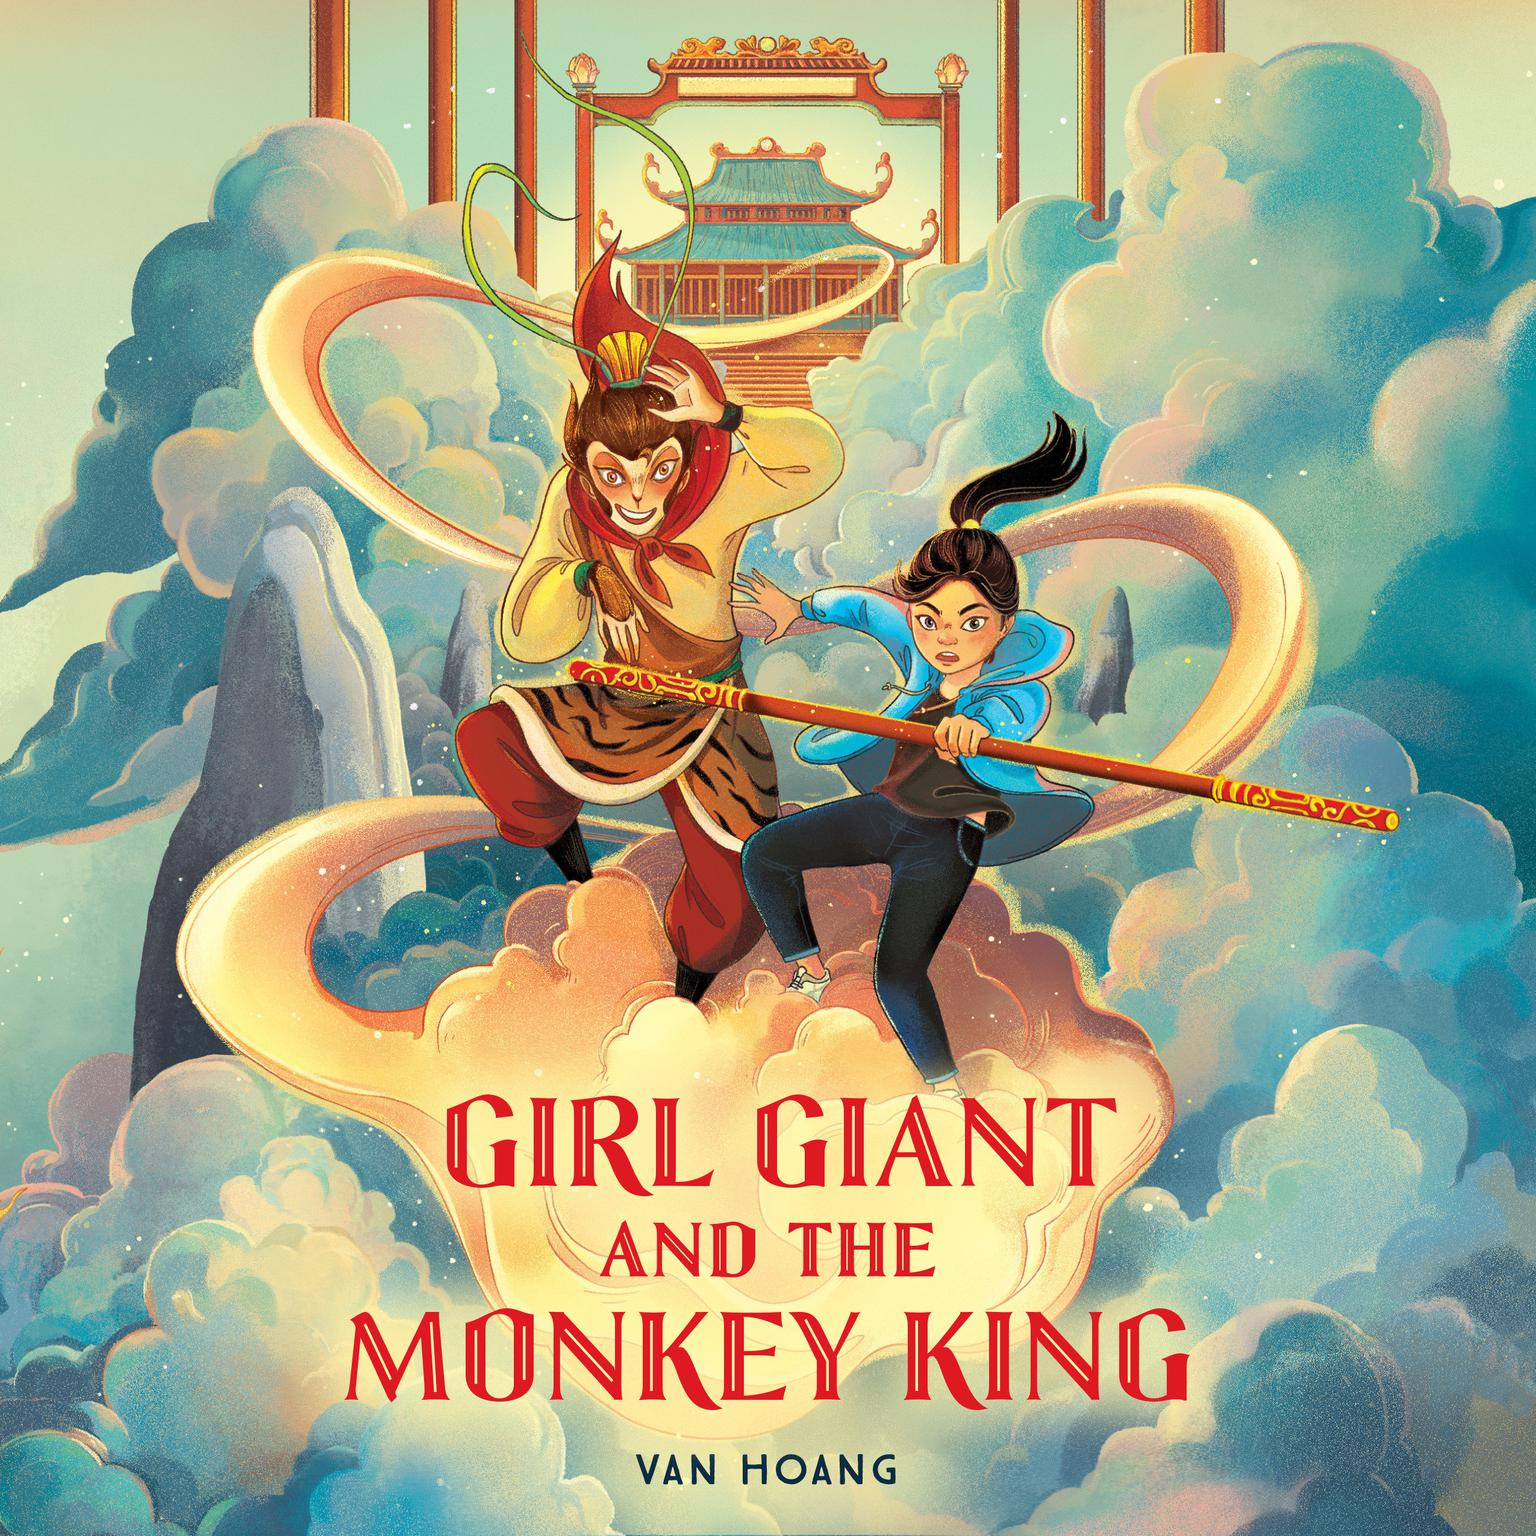 Girl Giant and the Monkey King Audiobook, by Van Hoang